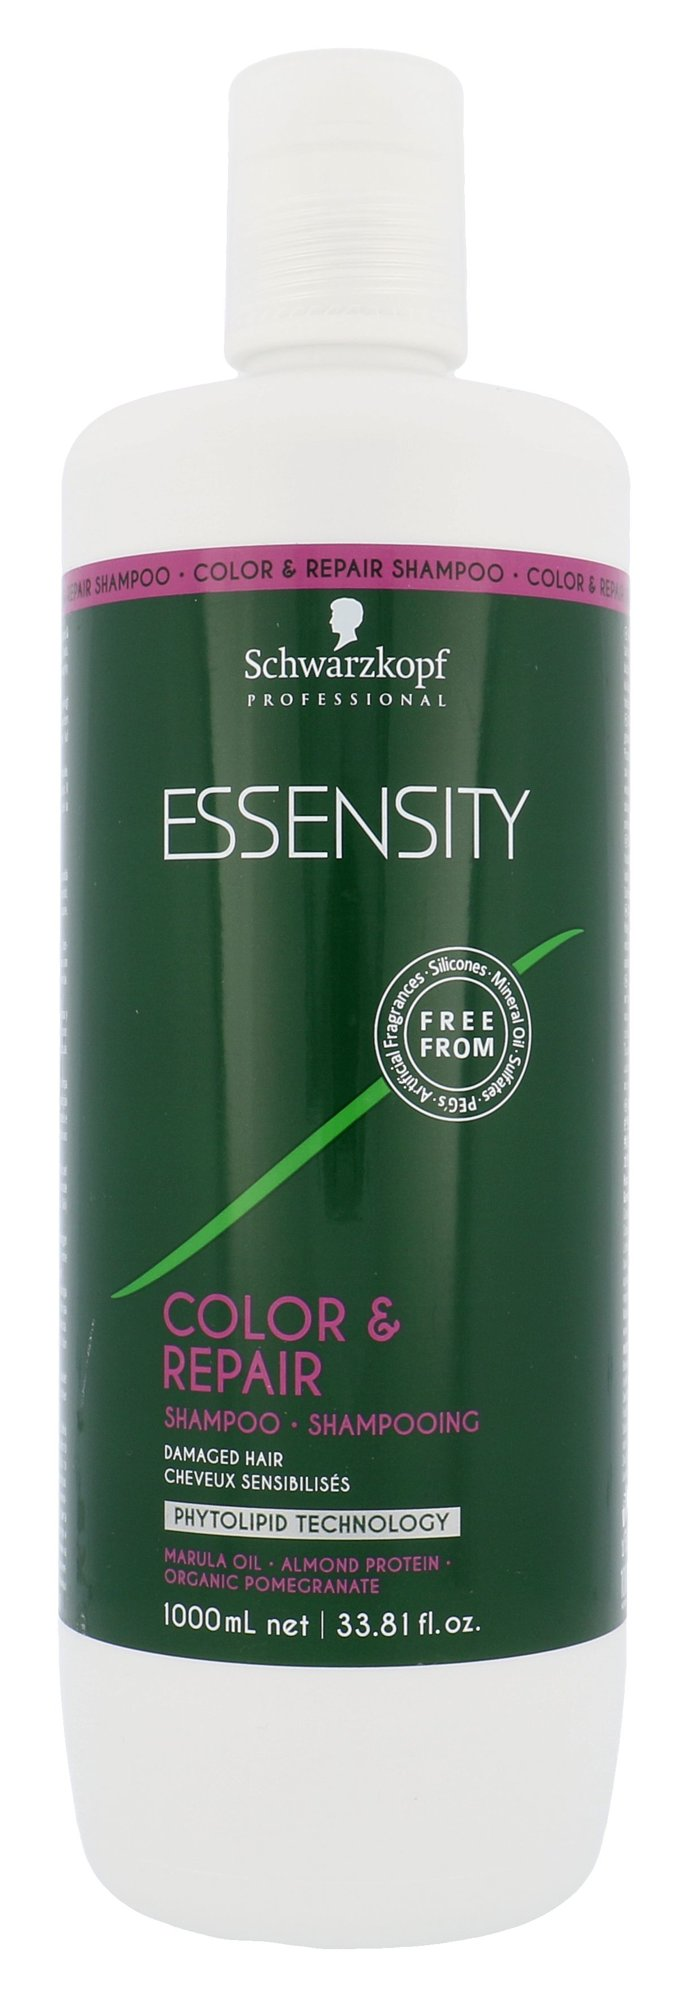 Schwarzkopf Essensity Color & Repair Cosmetic 1000ml